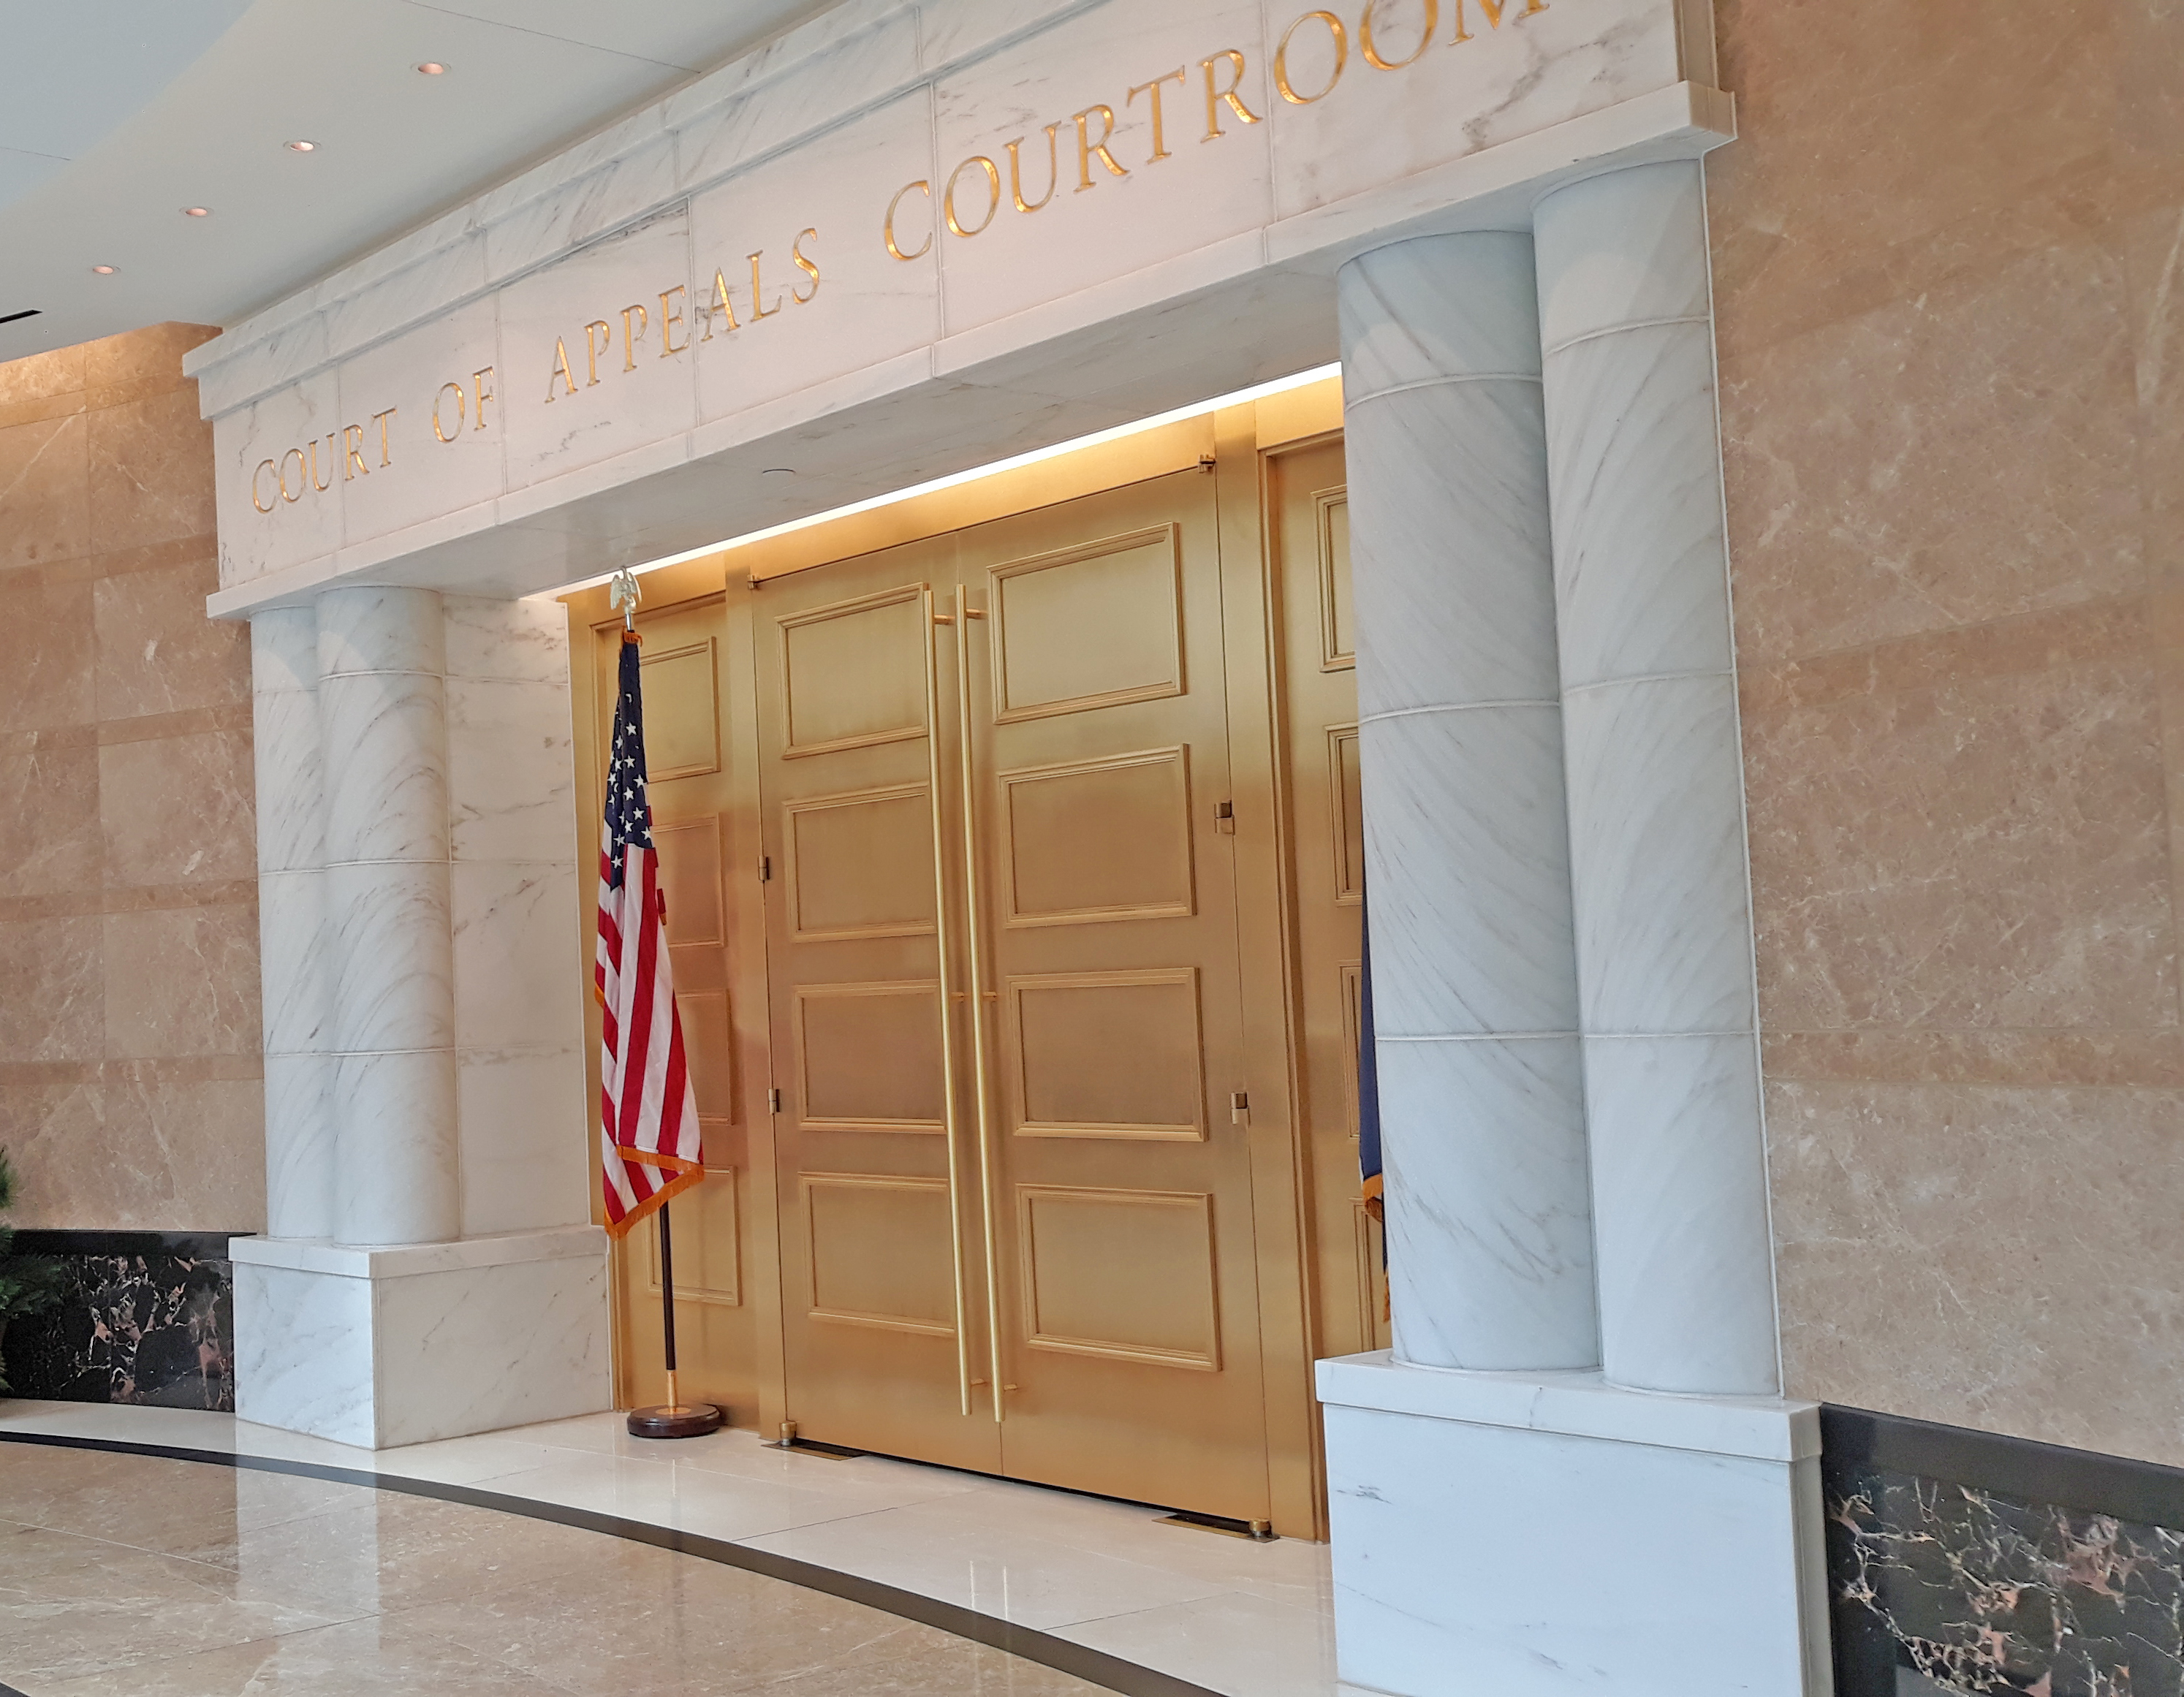 Double doors of a courtroom inside the Colorado Court of Appeals Courthouse with the American flag b